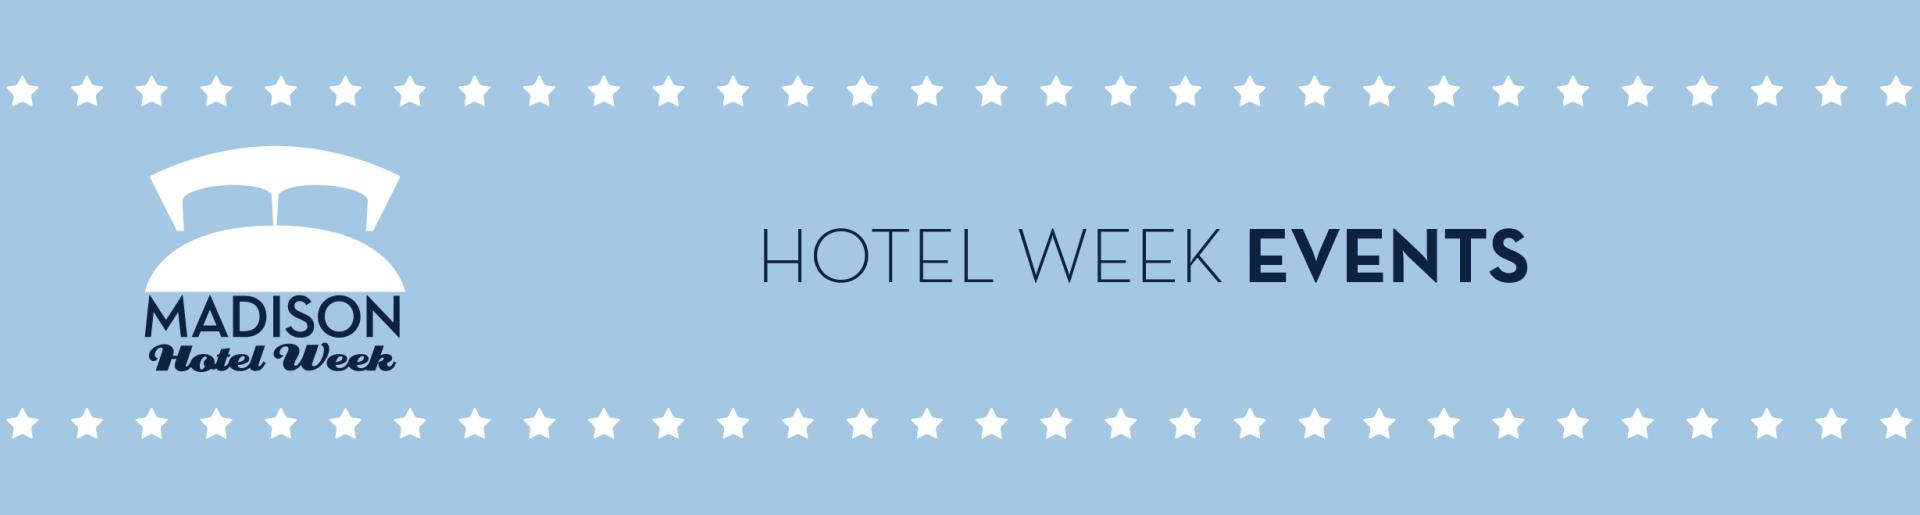 Madison Hotel Week 2017 Events